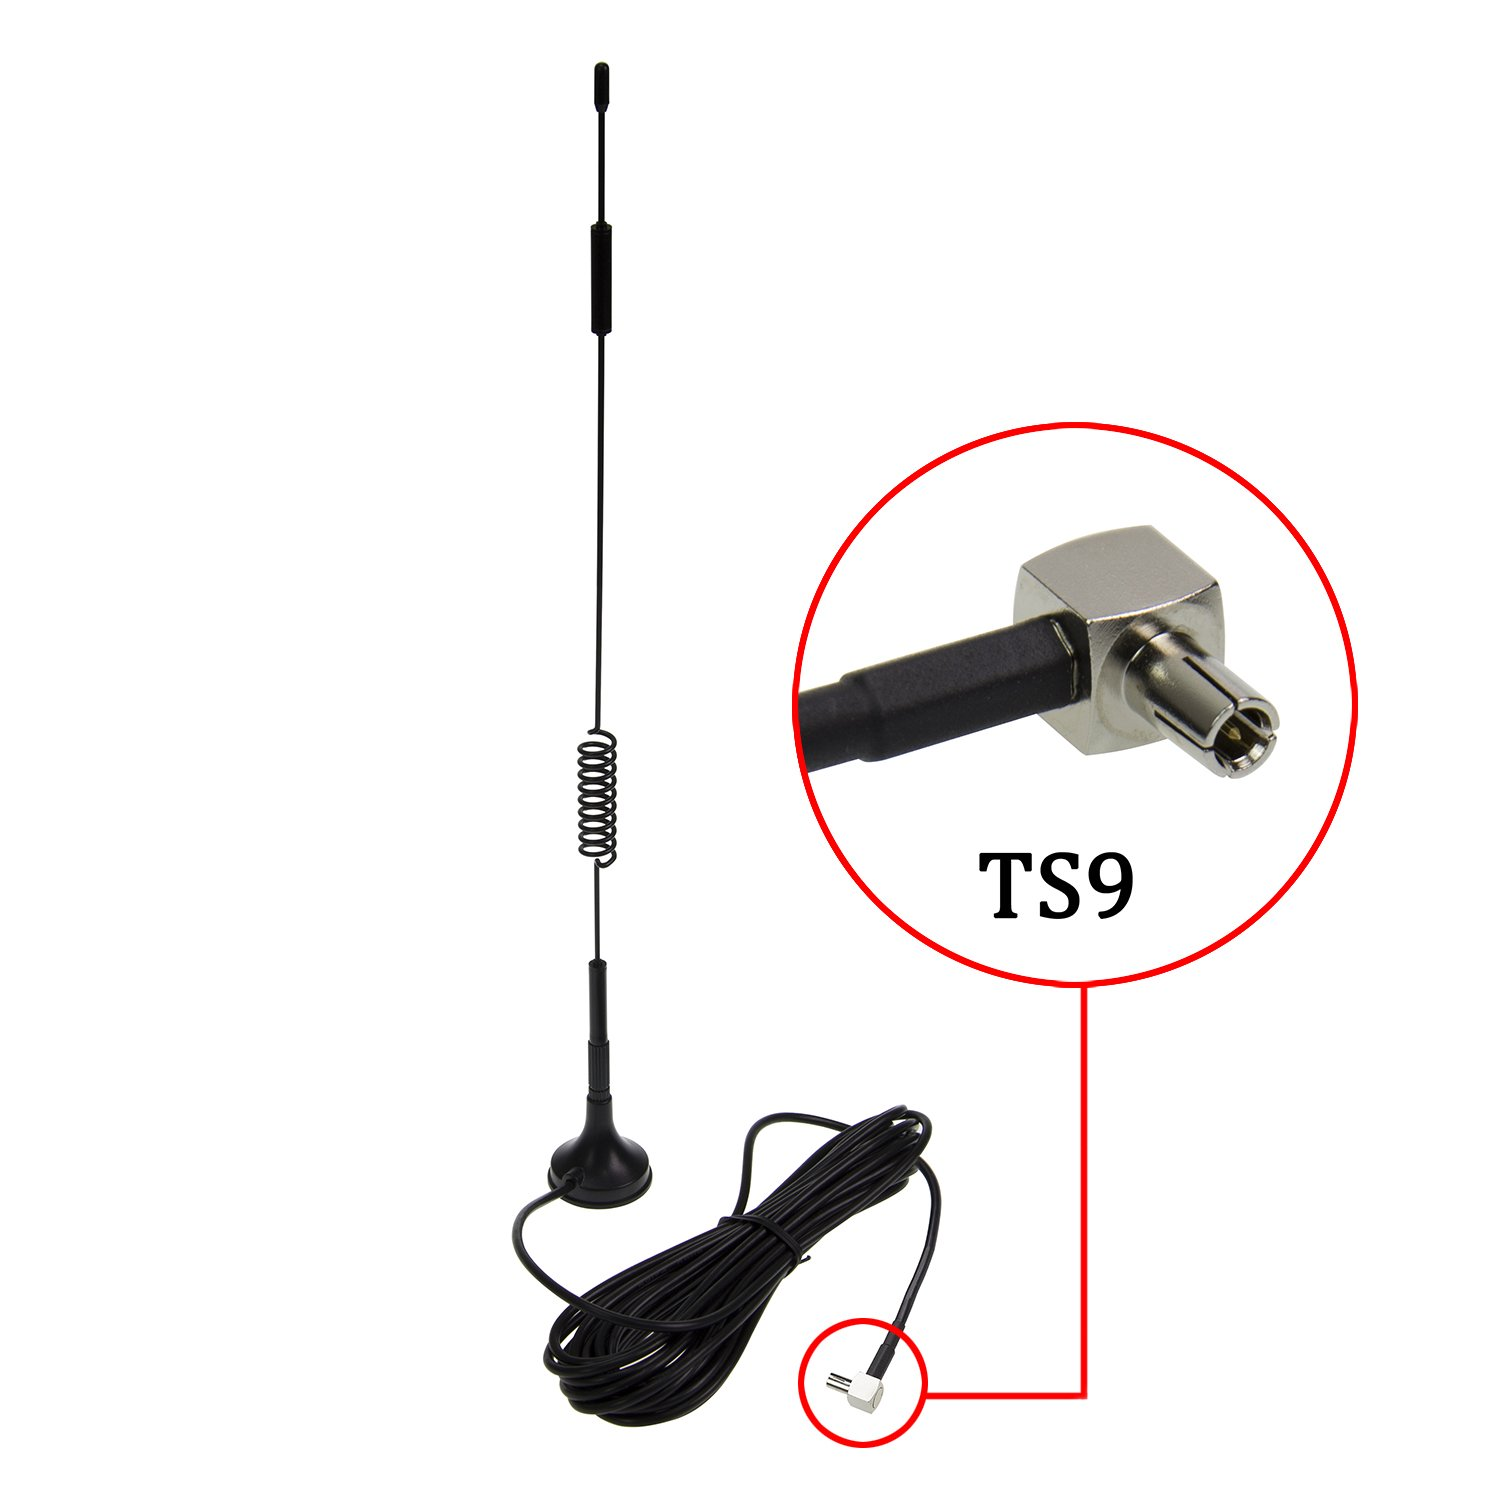 2-Pack TS9 Antenna for ZTE 4G LTE Mobile WiFi Router MF80 MF821D MF633BP MF645